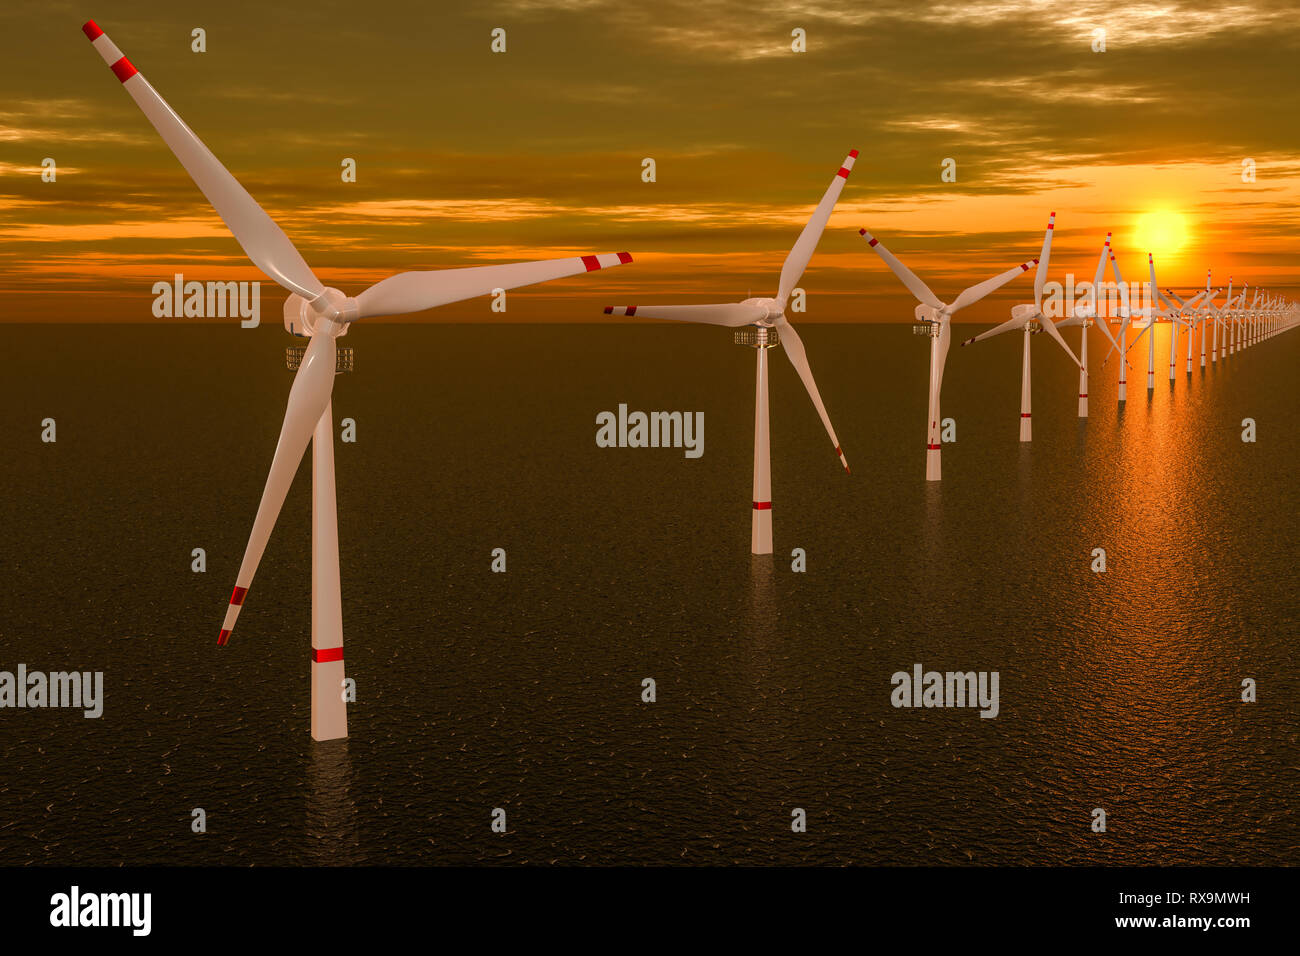 Wind farm, set of wind turbines in sea during sunset  3D